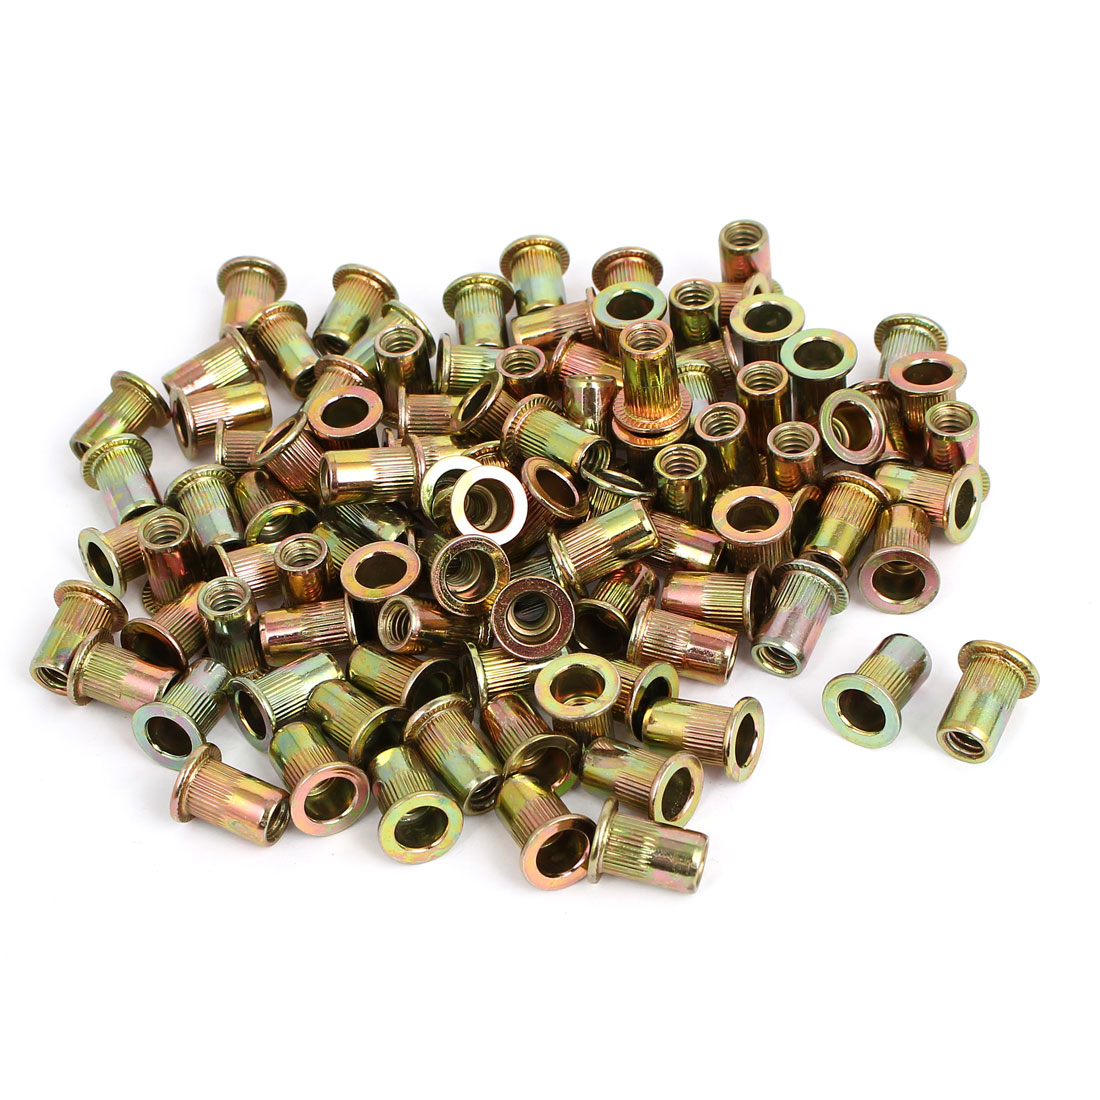 "1/4"" Thread 15mm Long Rivet Nut Insert Nutsert 100pcs"